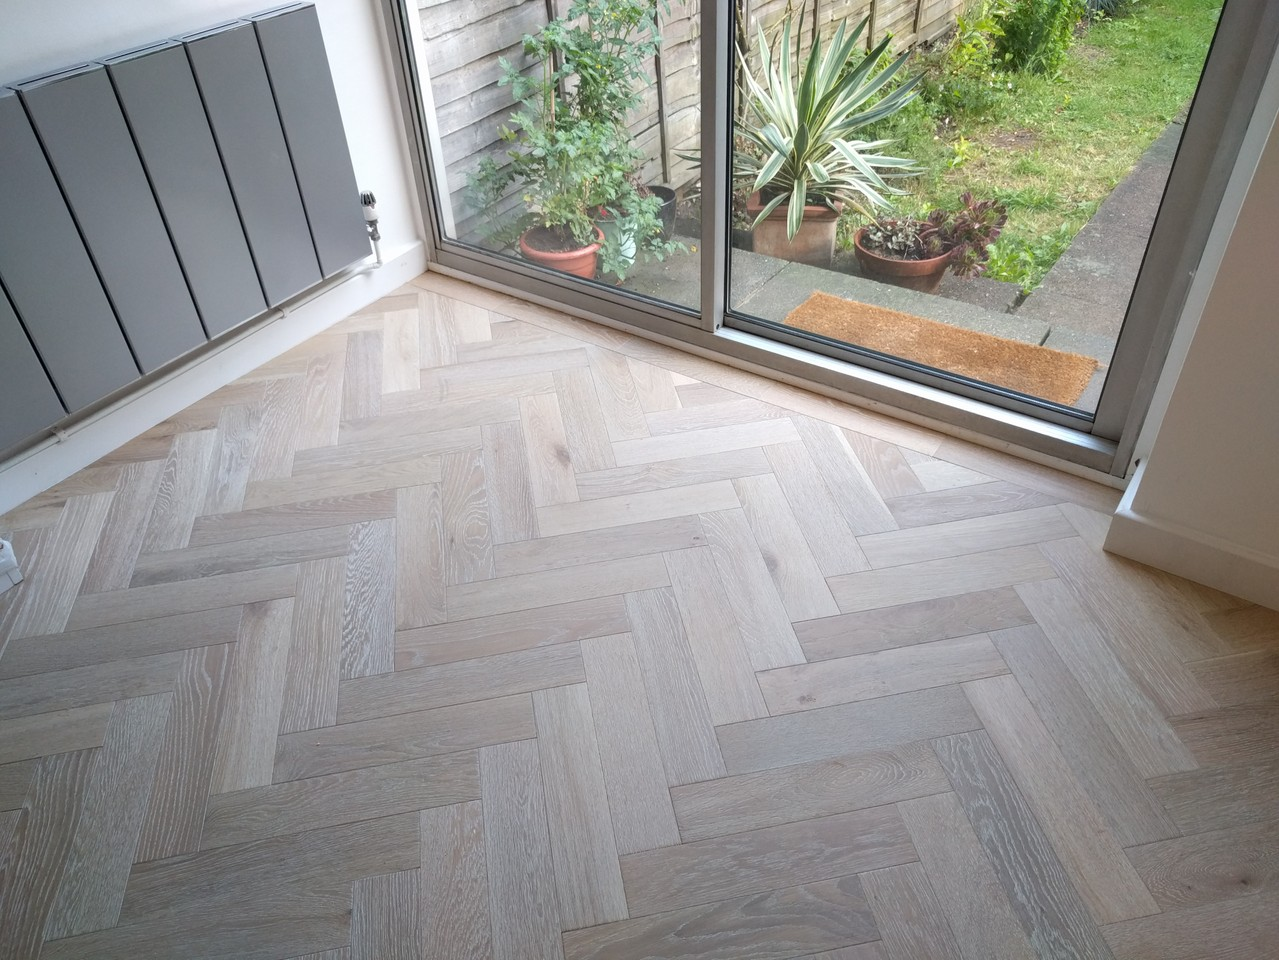 With or without a border? This parquet wood floor that we